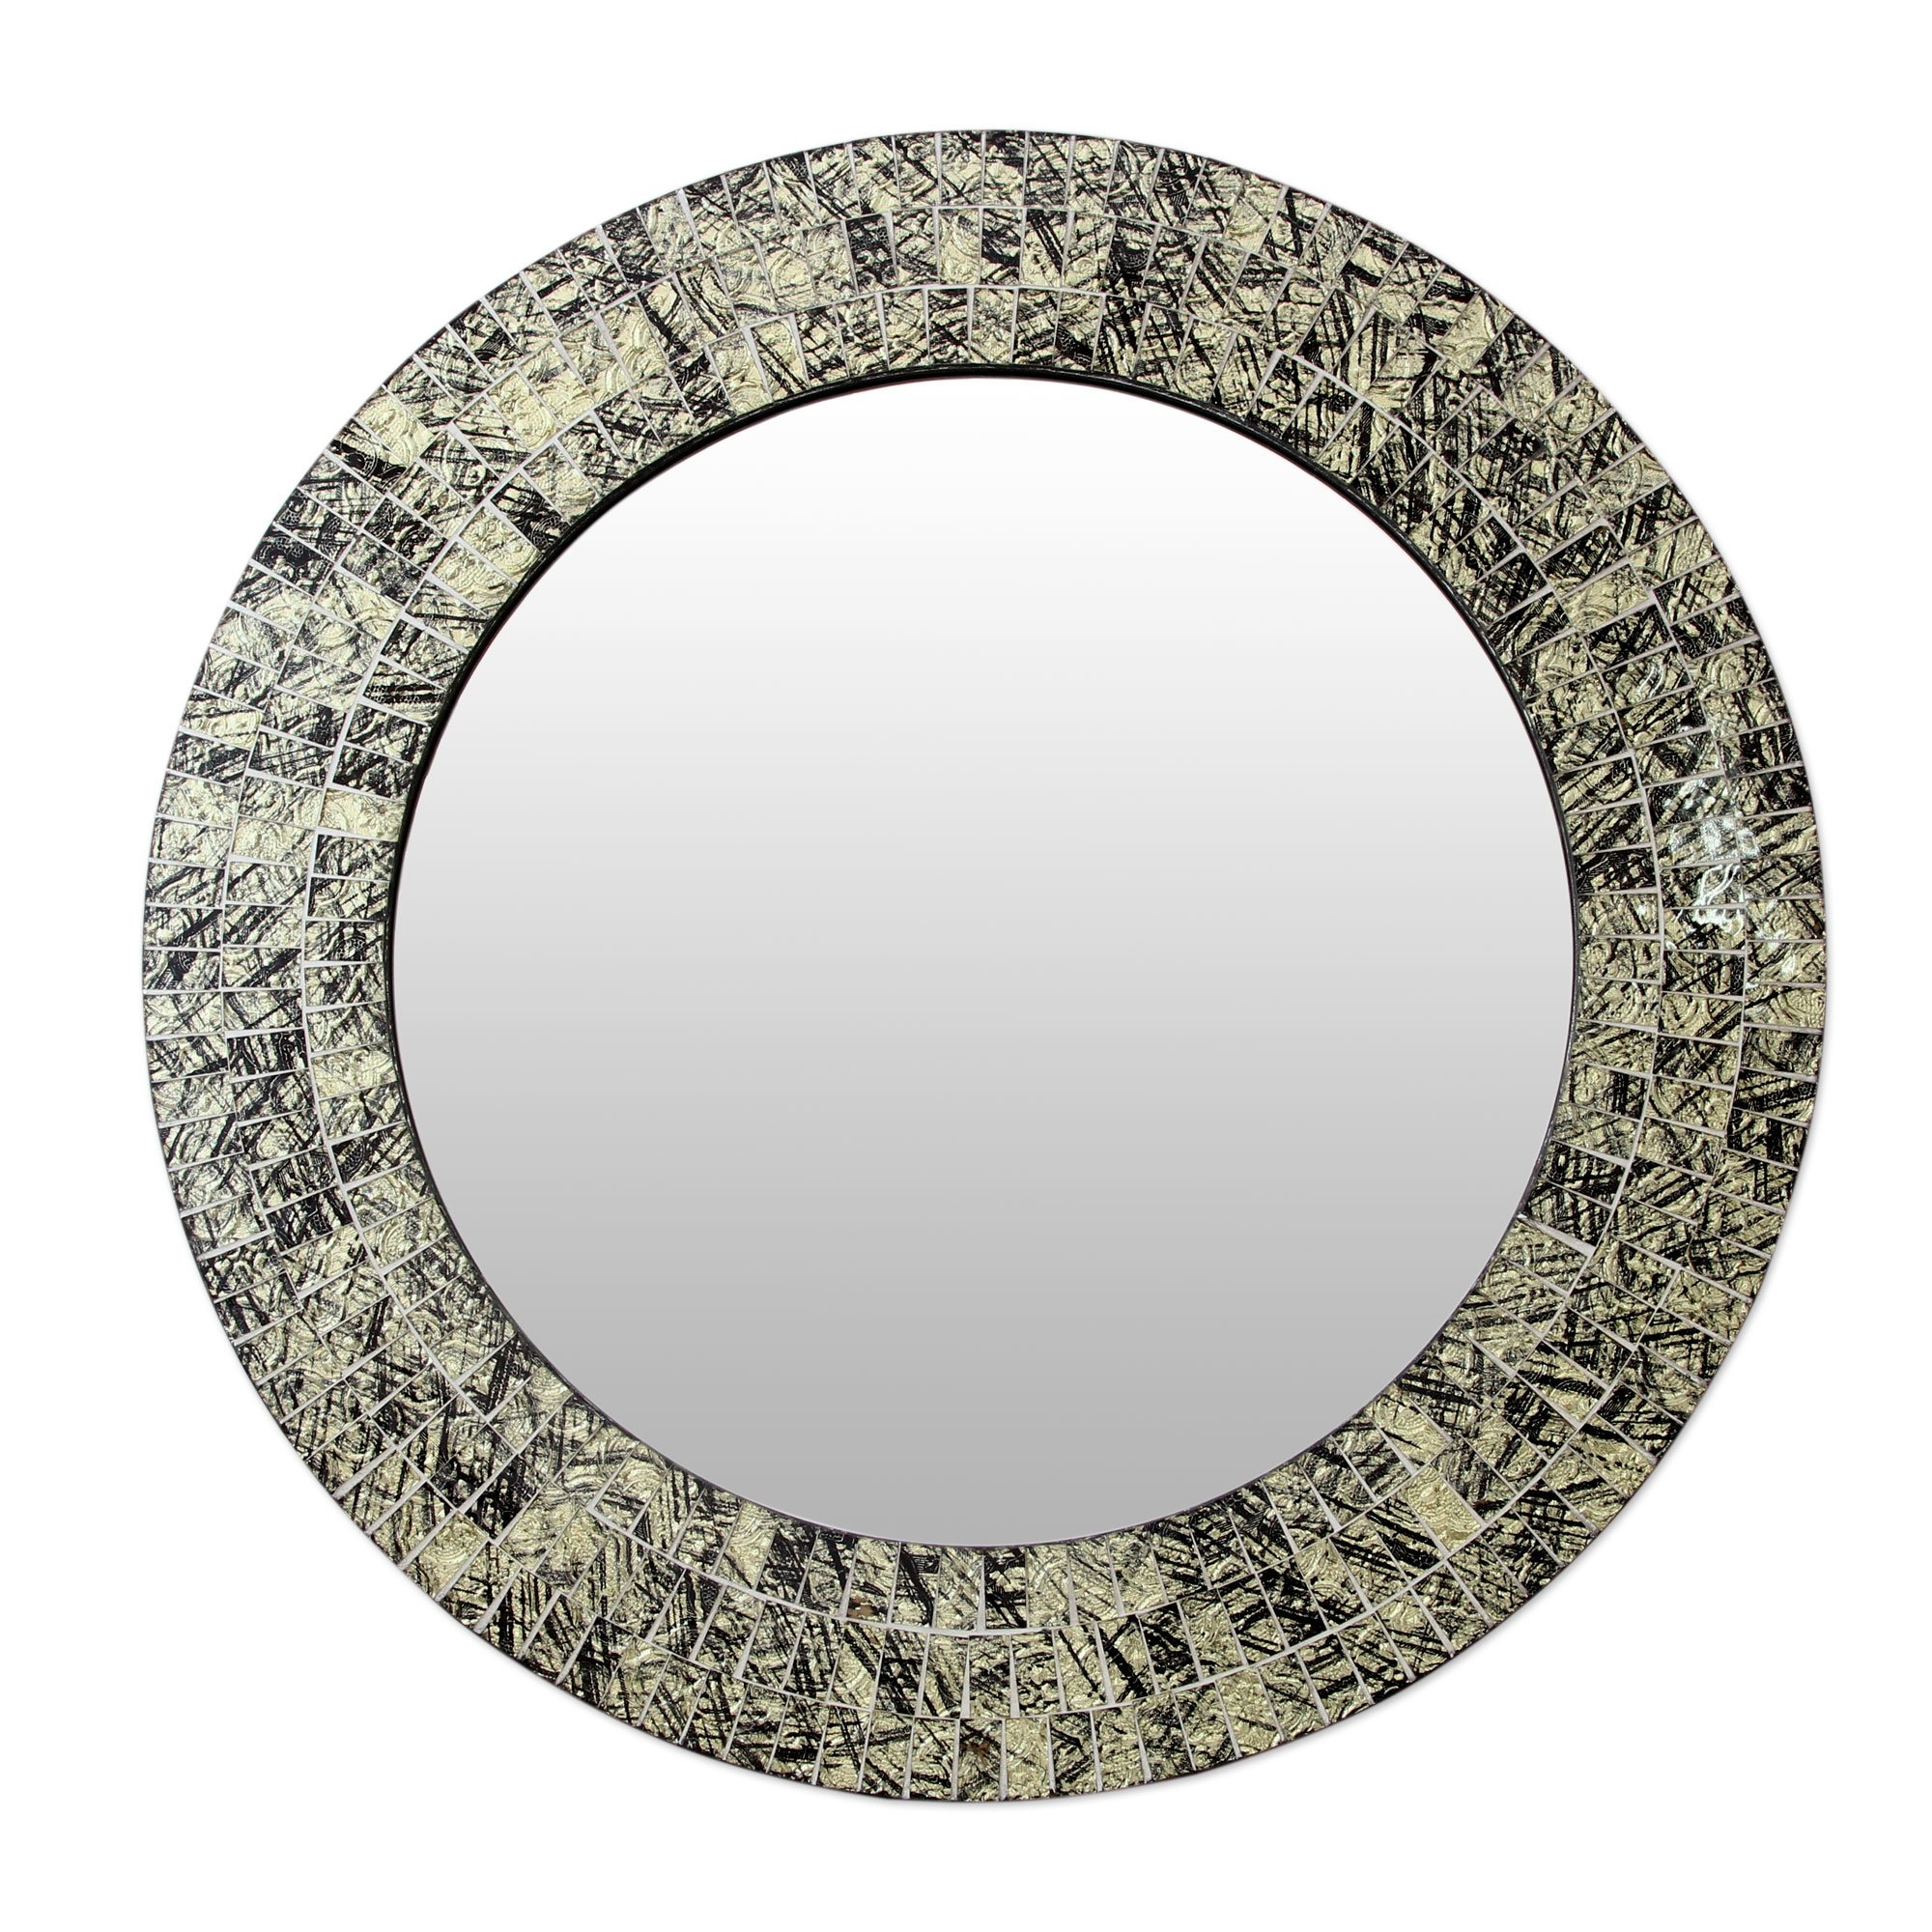 Mirror round mosaic wall mirror 10 of 15 photos novica golden moon glass mosaic round wall mirror wayfair inside round mosaic wall mirror amipublicfo Image collections